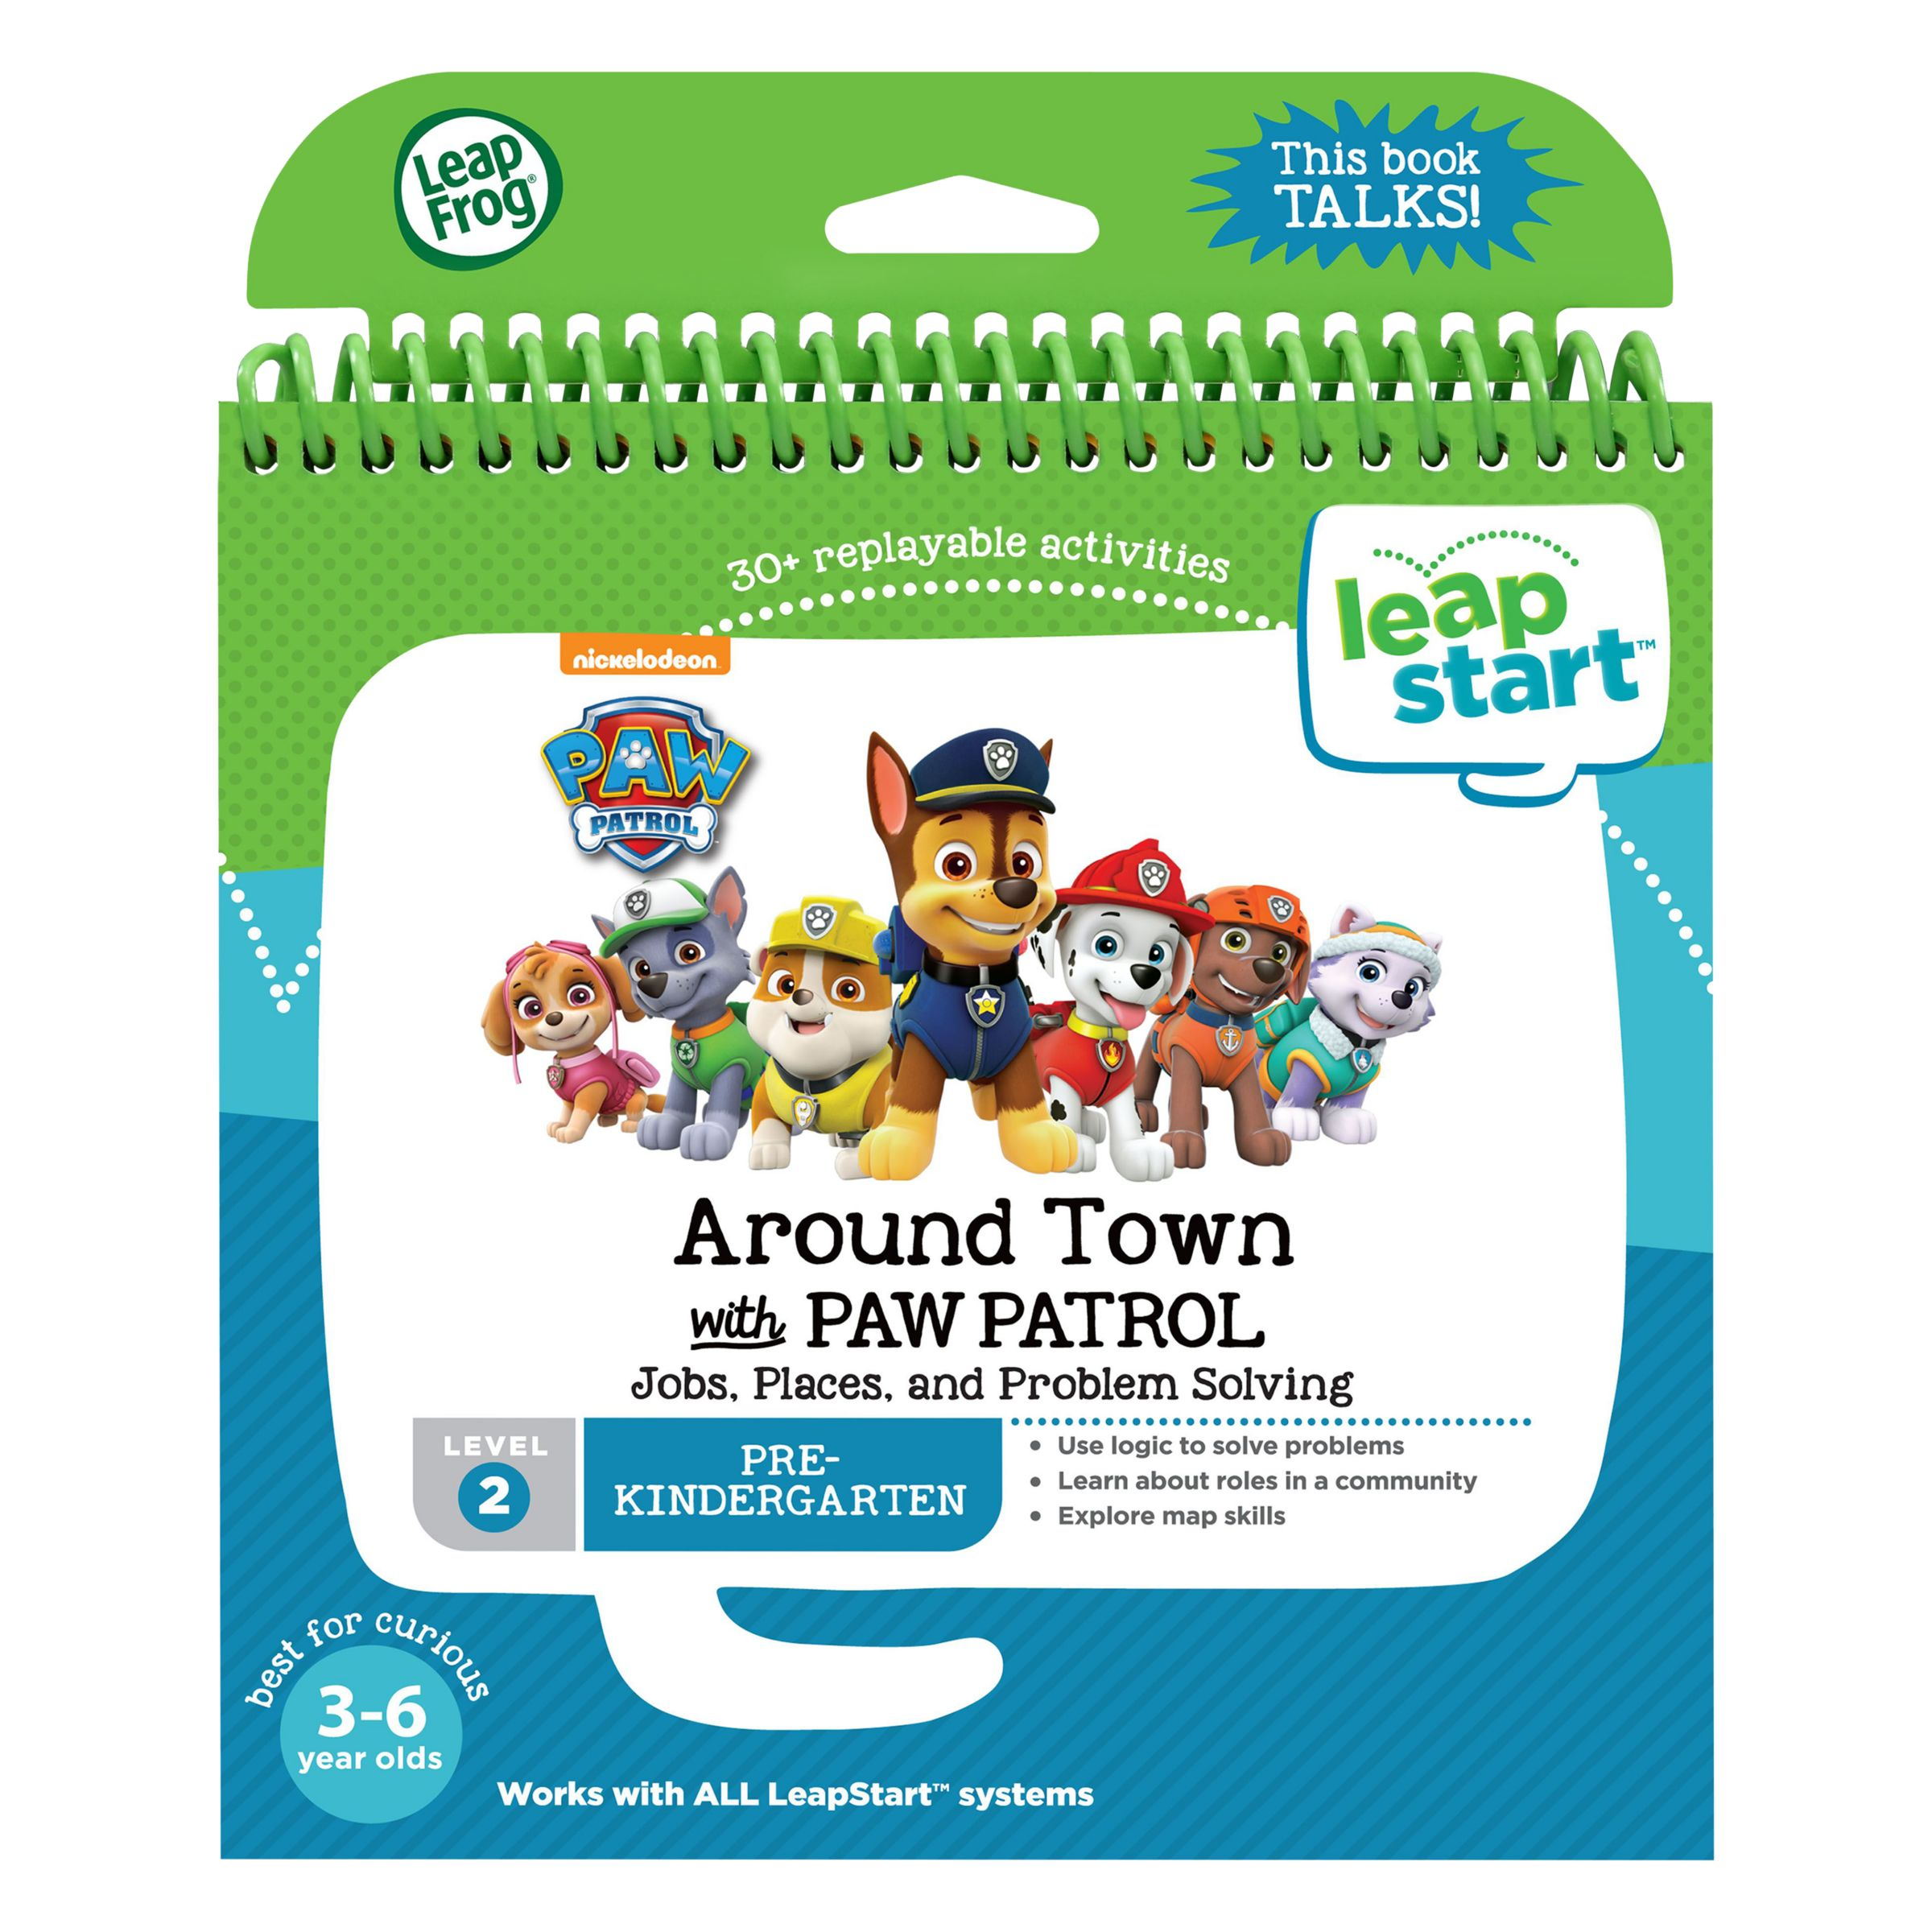 Leapfrog Interactive United States Map.Leapfrog Leapstart Around Town With Paw Patrol Activity Book At John